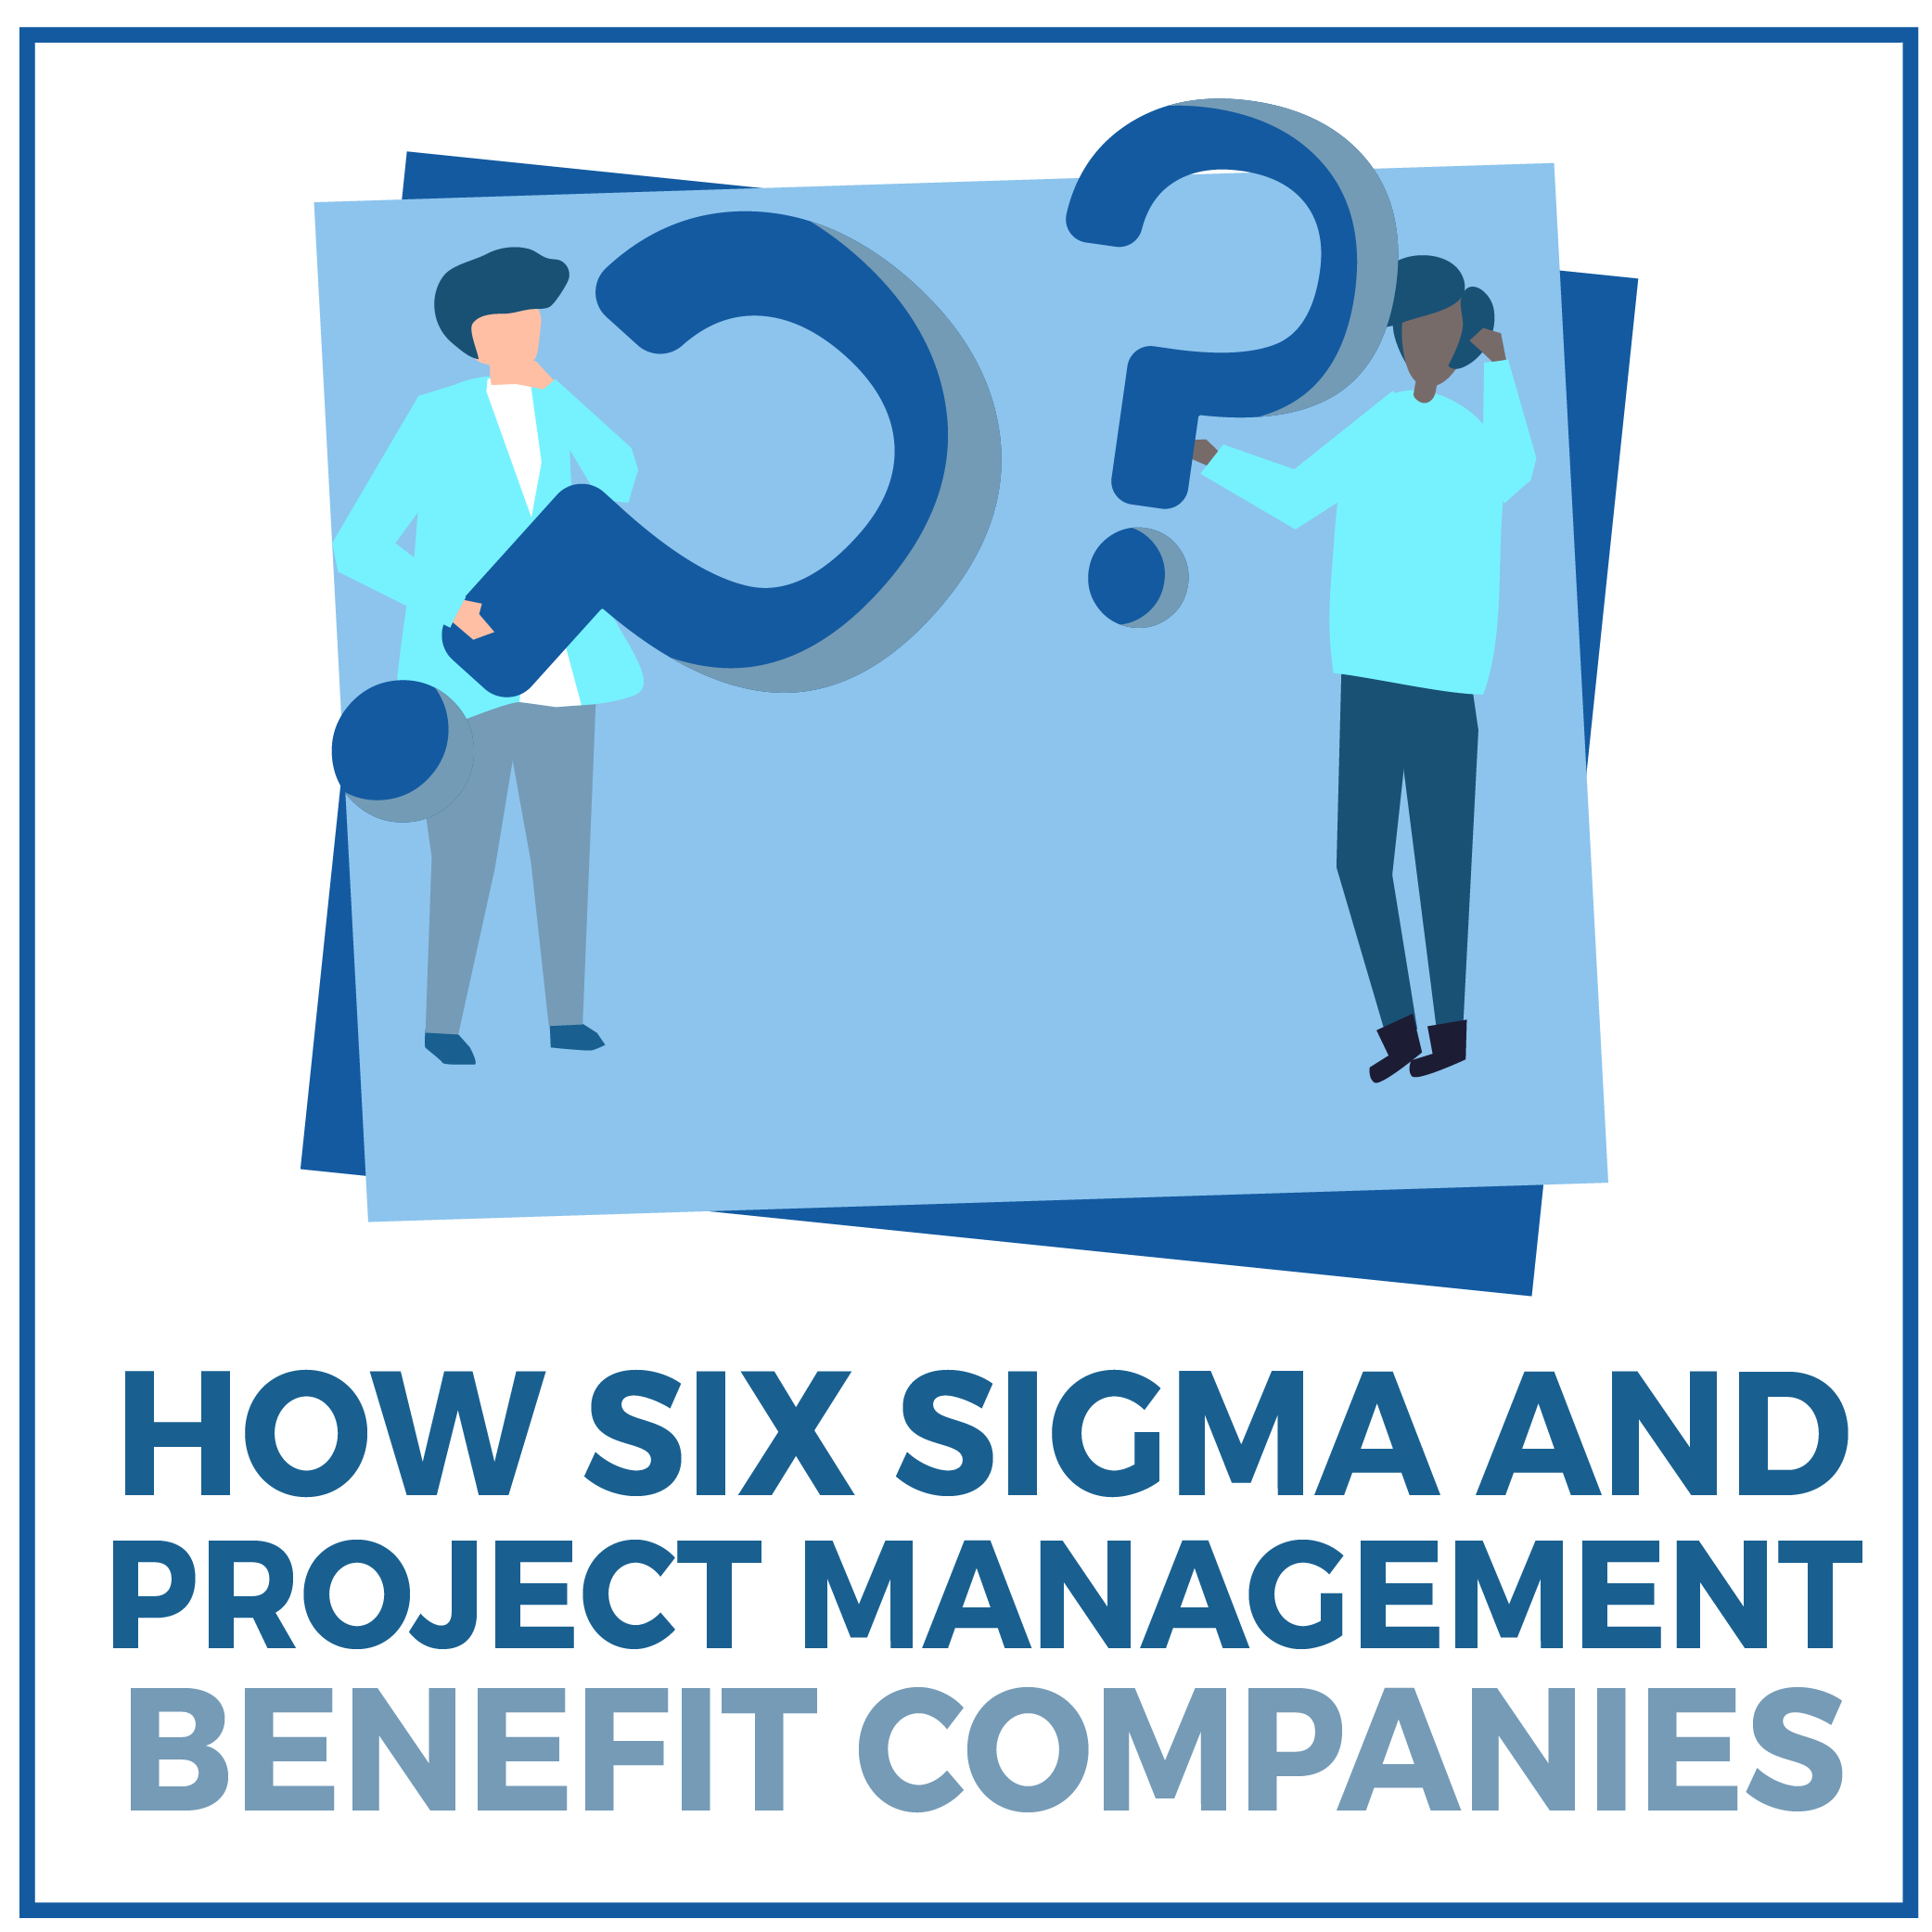 How Six Sigma and Project Management Benefit Companies